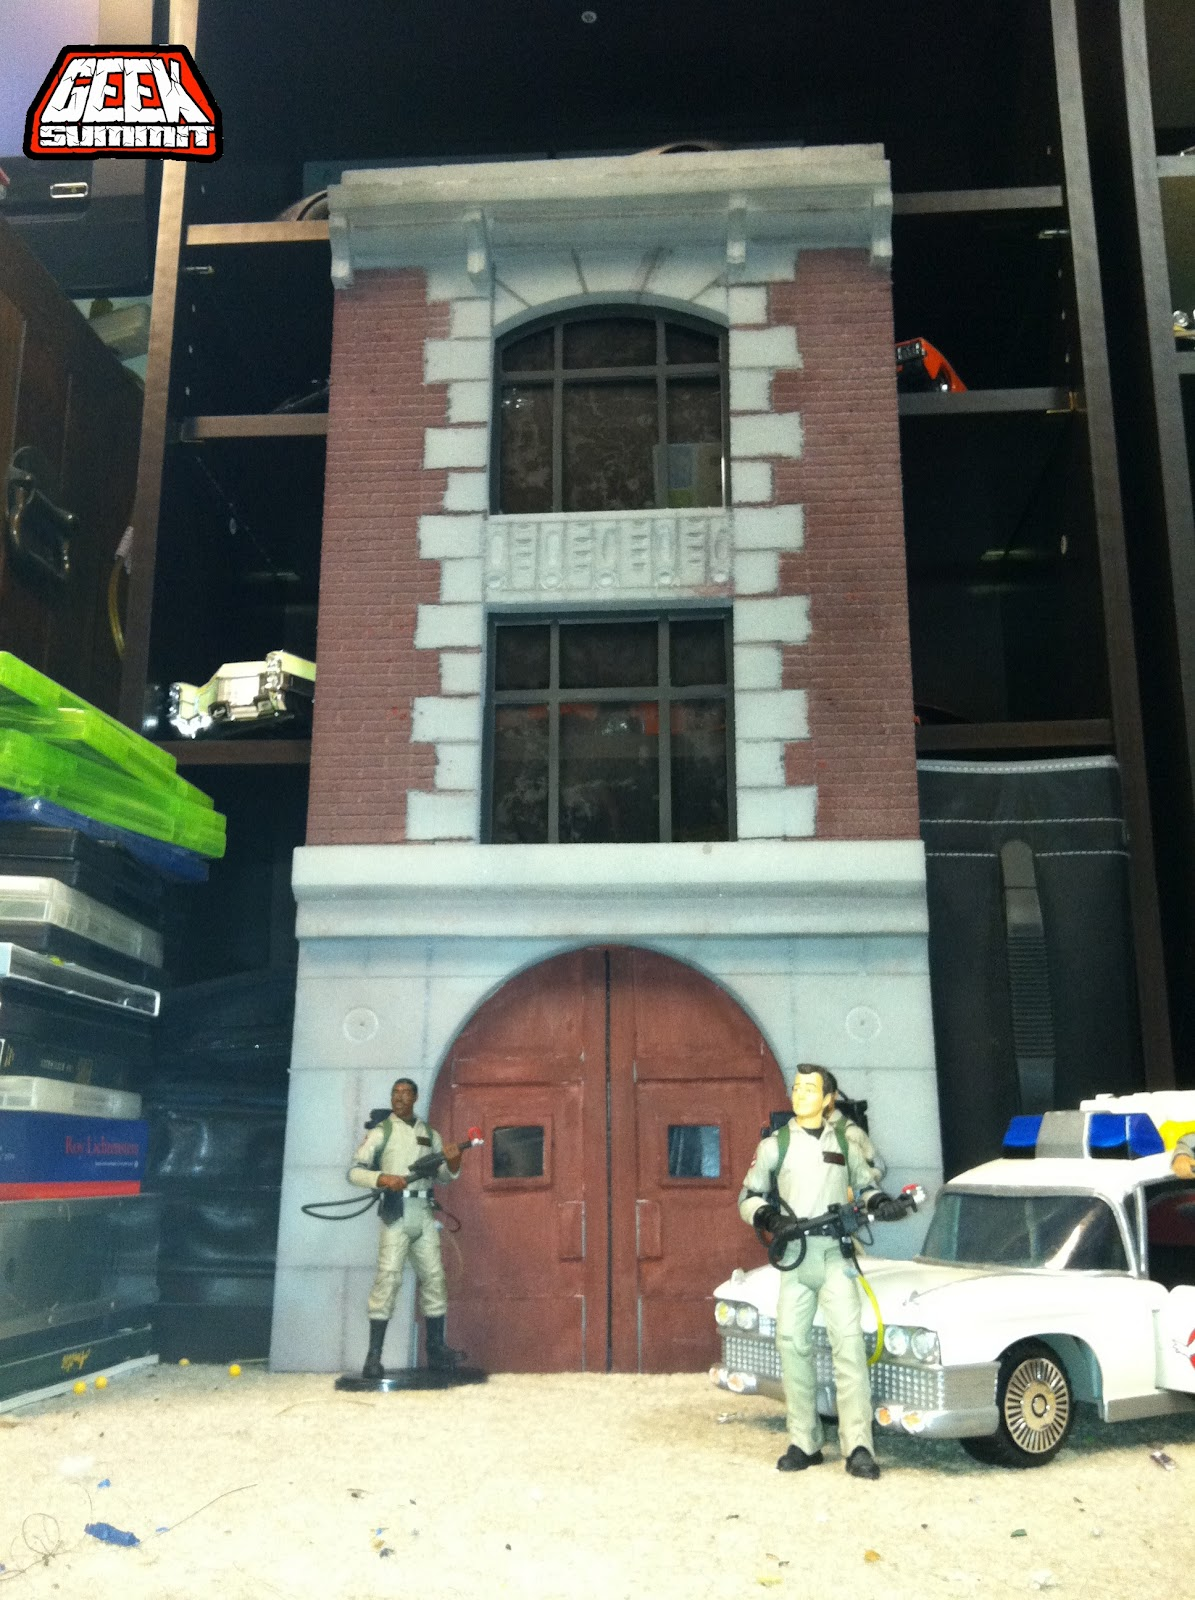 Fan creation: Ghostbusters firehouse for Mattel figures